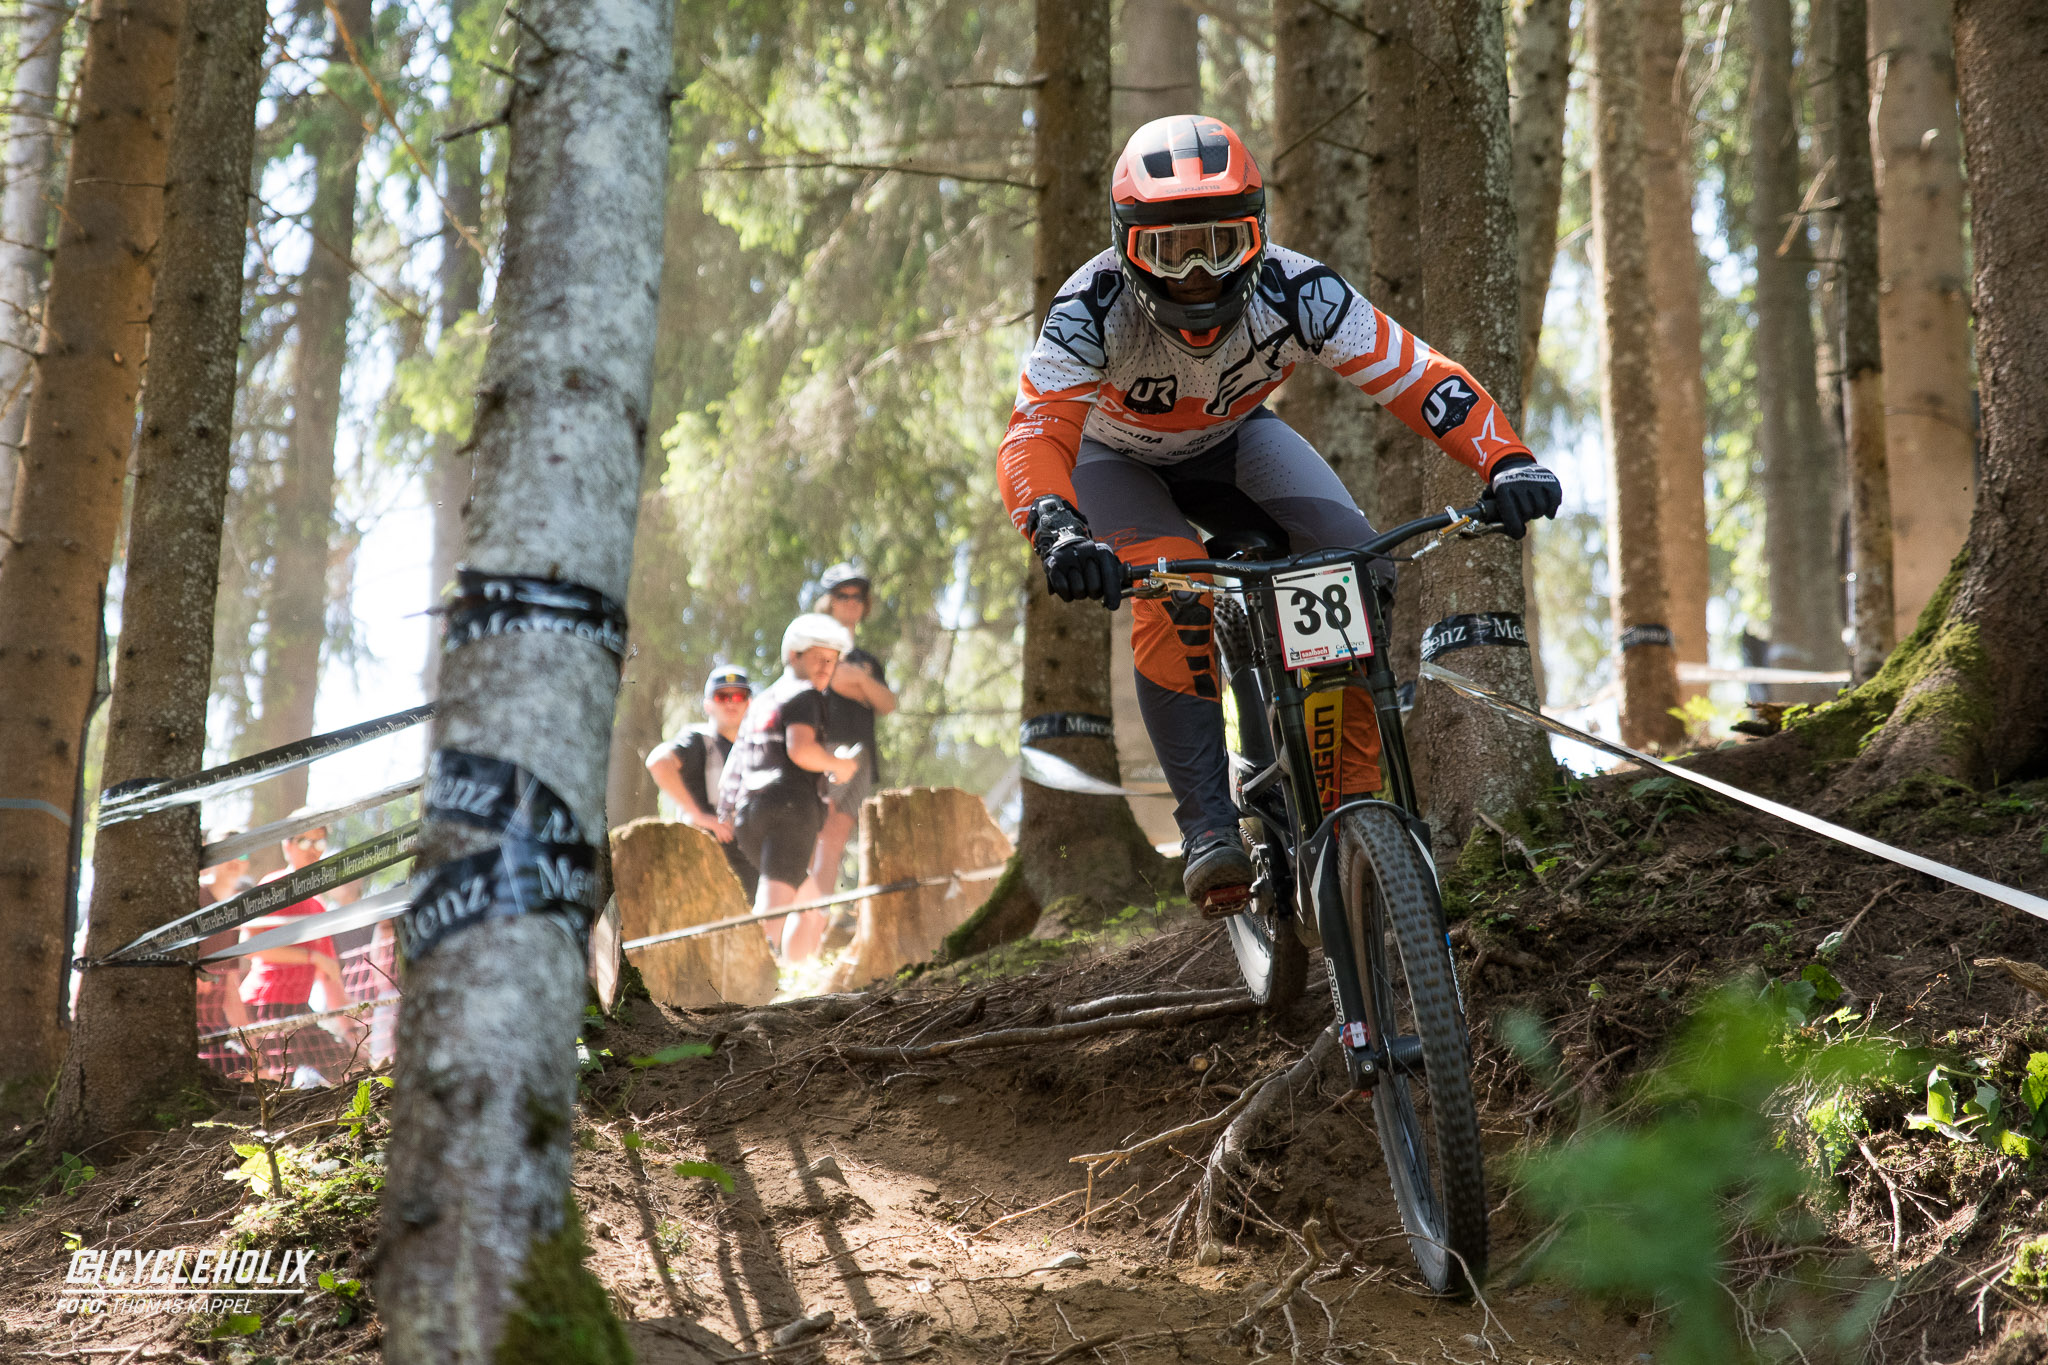 2019 Downhill Worldcup Leogang Finale Action 24 Cycleholix